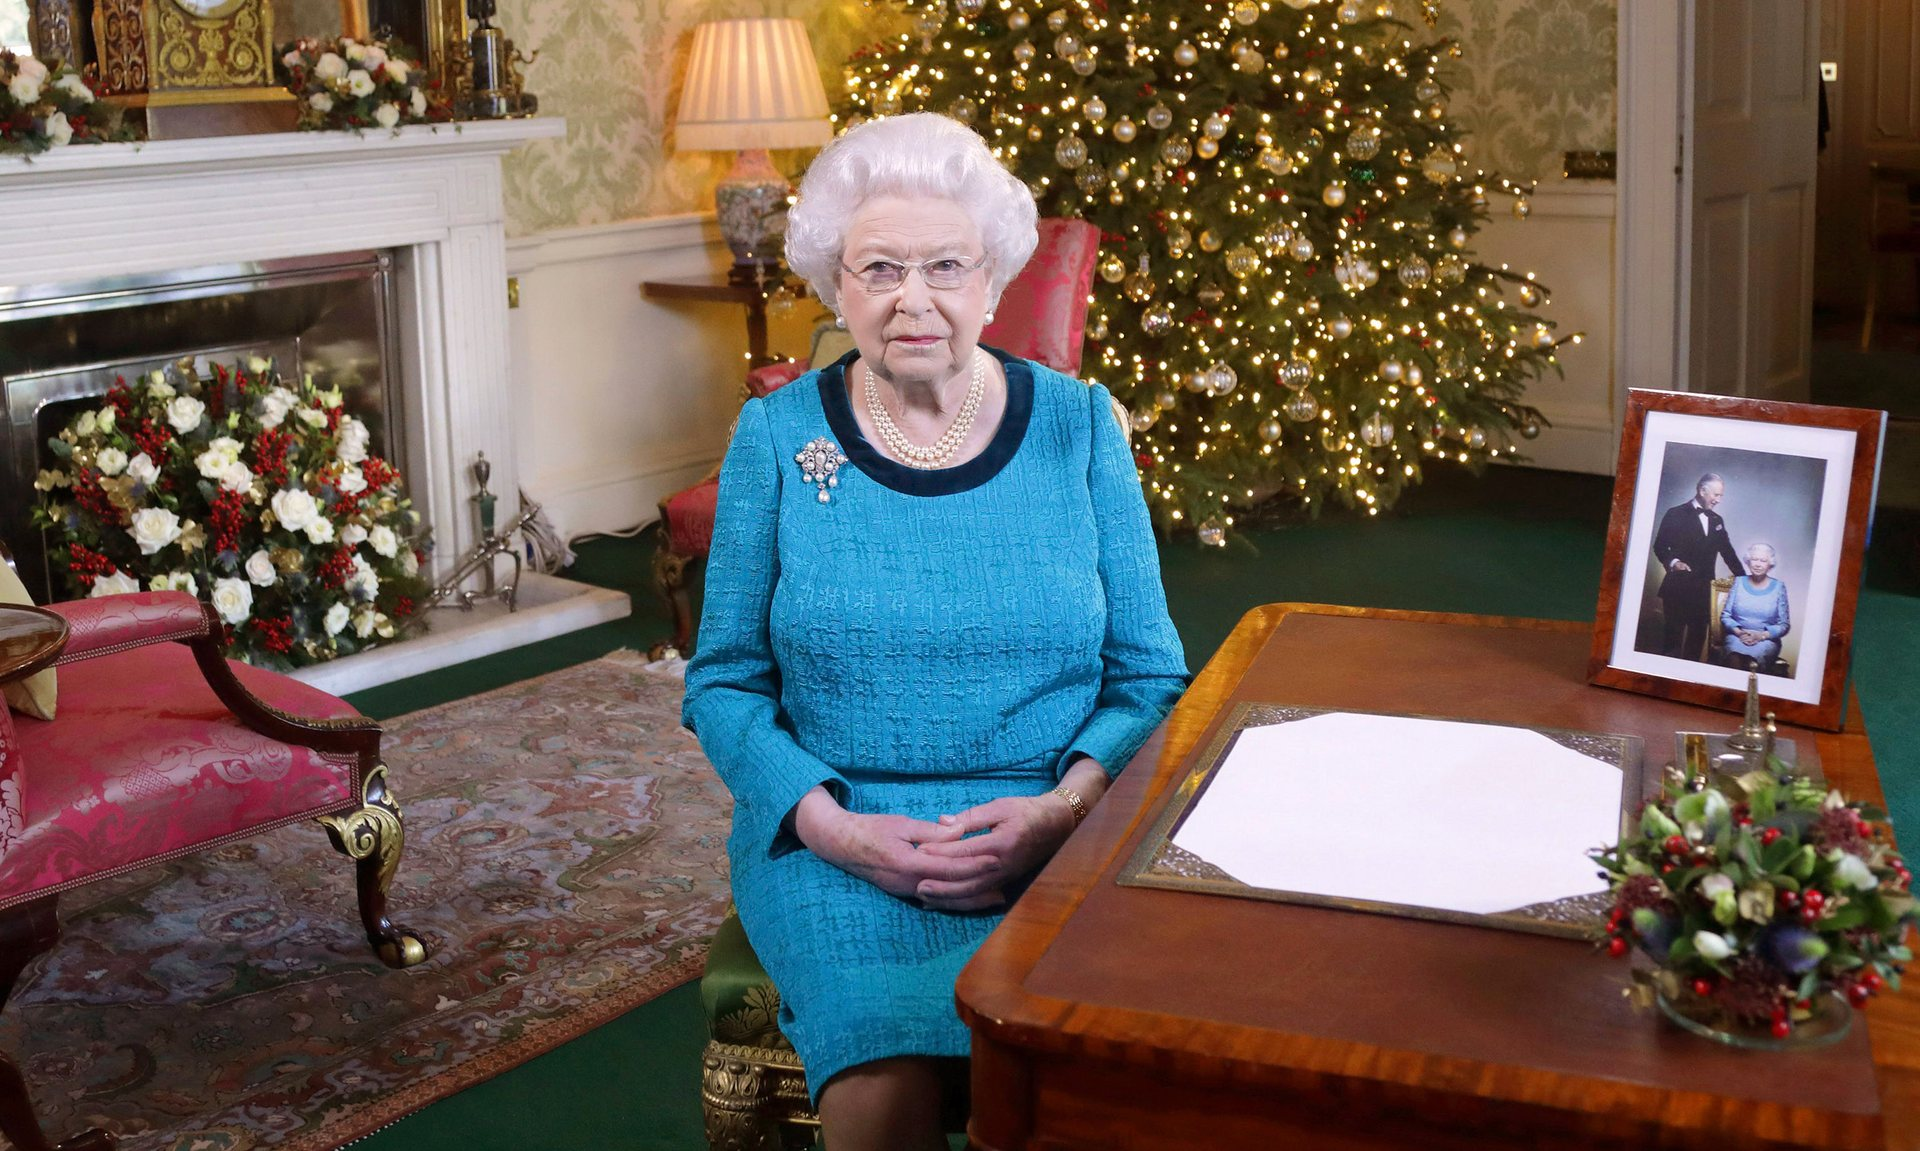 How to listen to Queen Elizabeth's Christmas message using Alexa